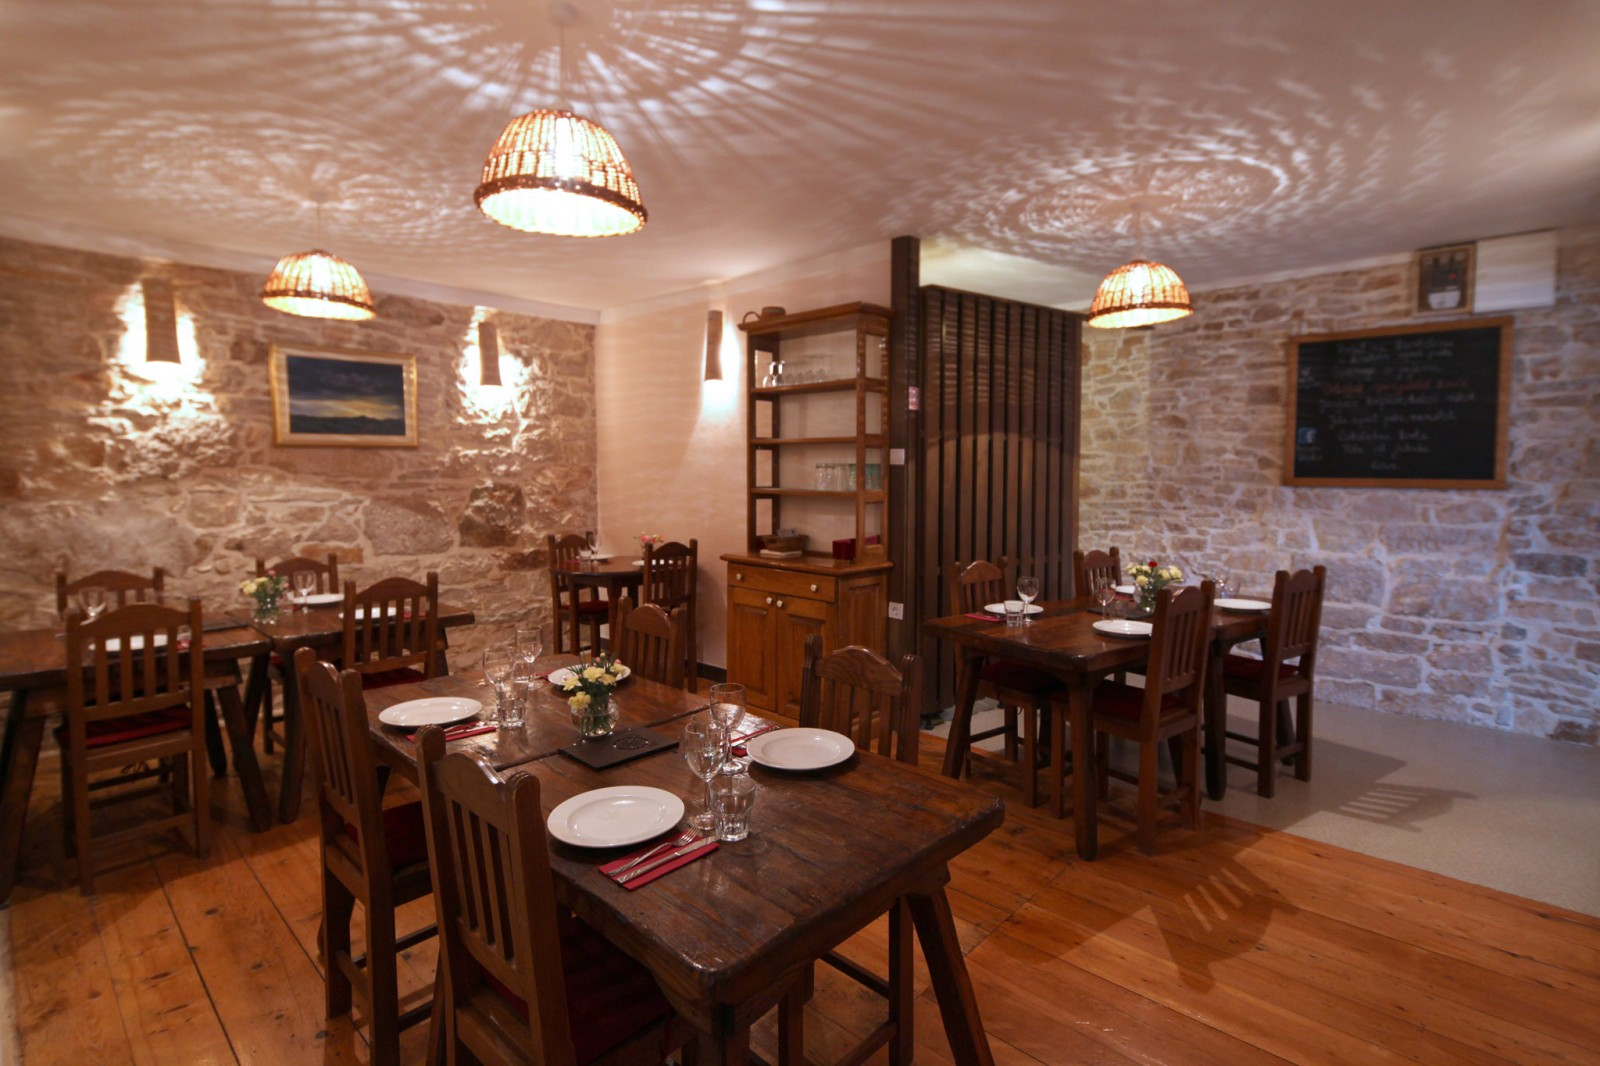 Dalmatian Konoba: A place to try amazing food and feel the tradition